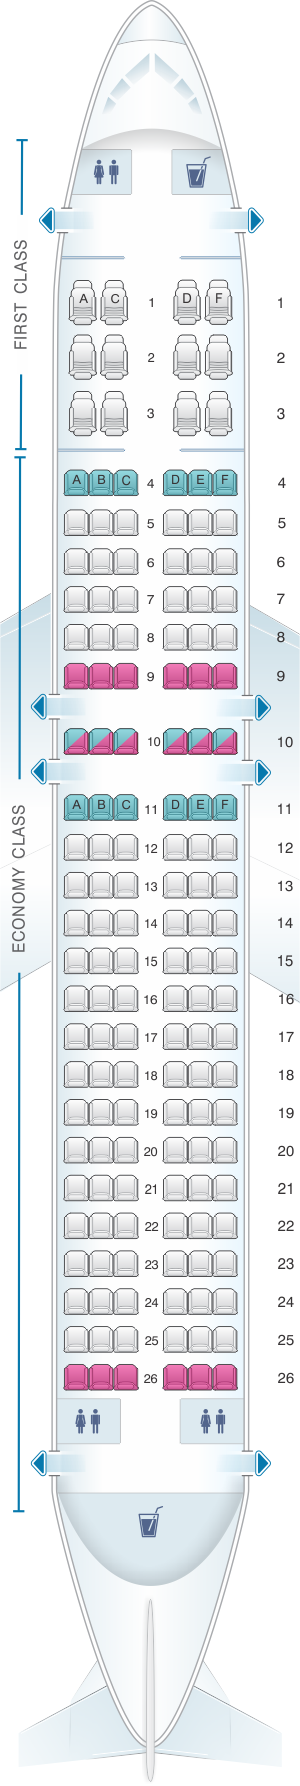 Seat map for American Airlines Airbus A320